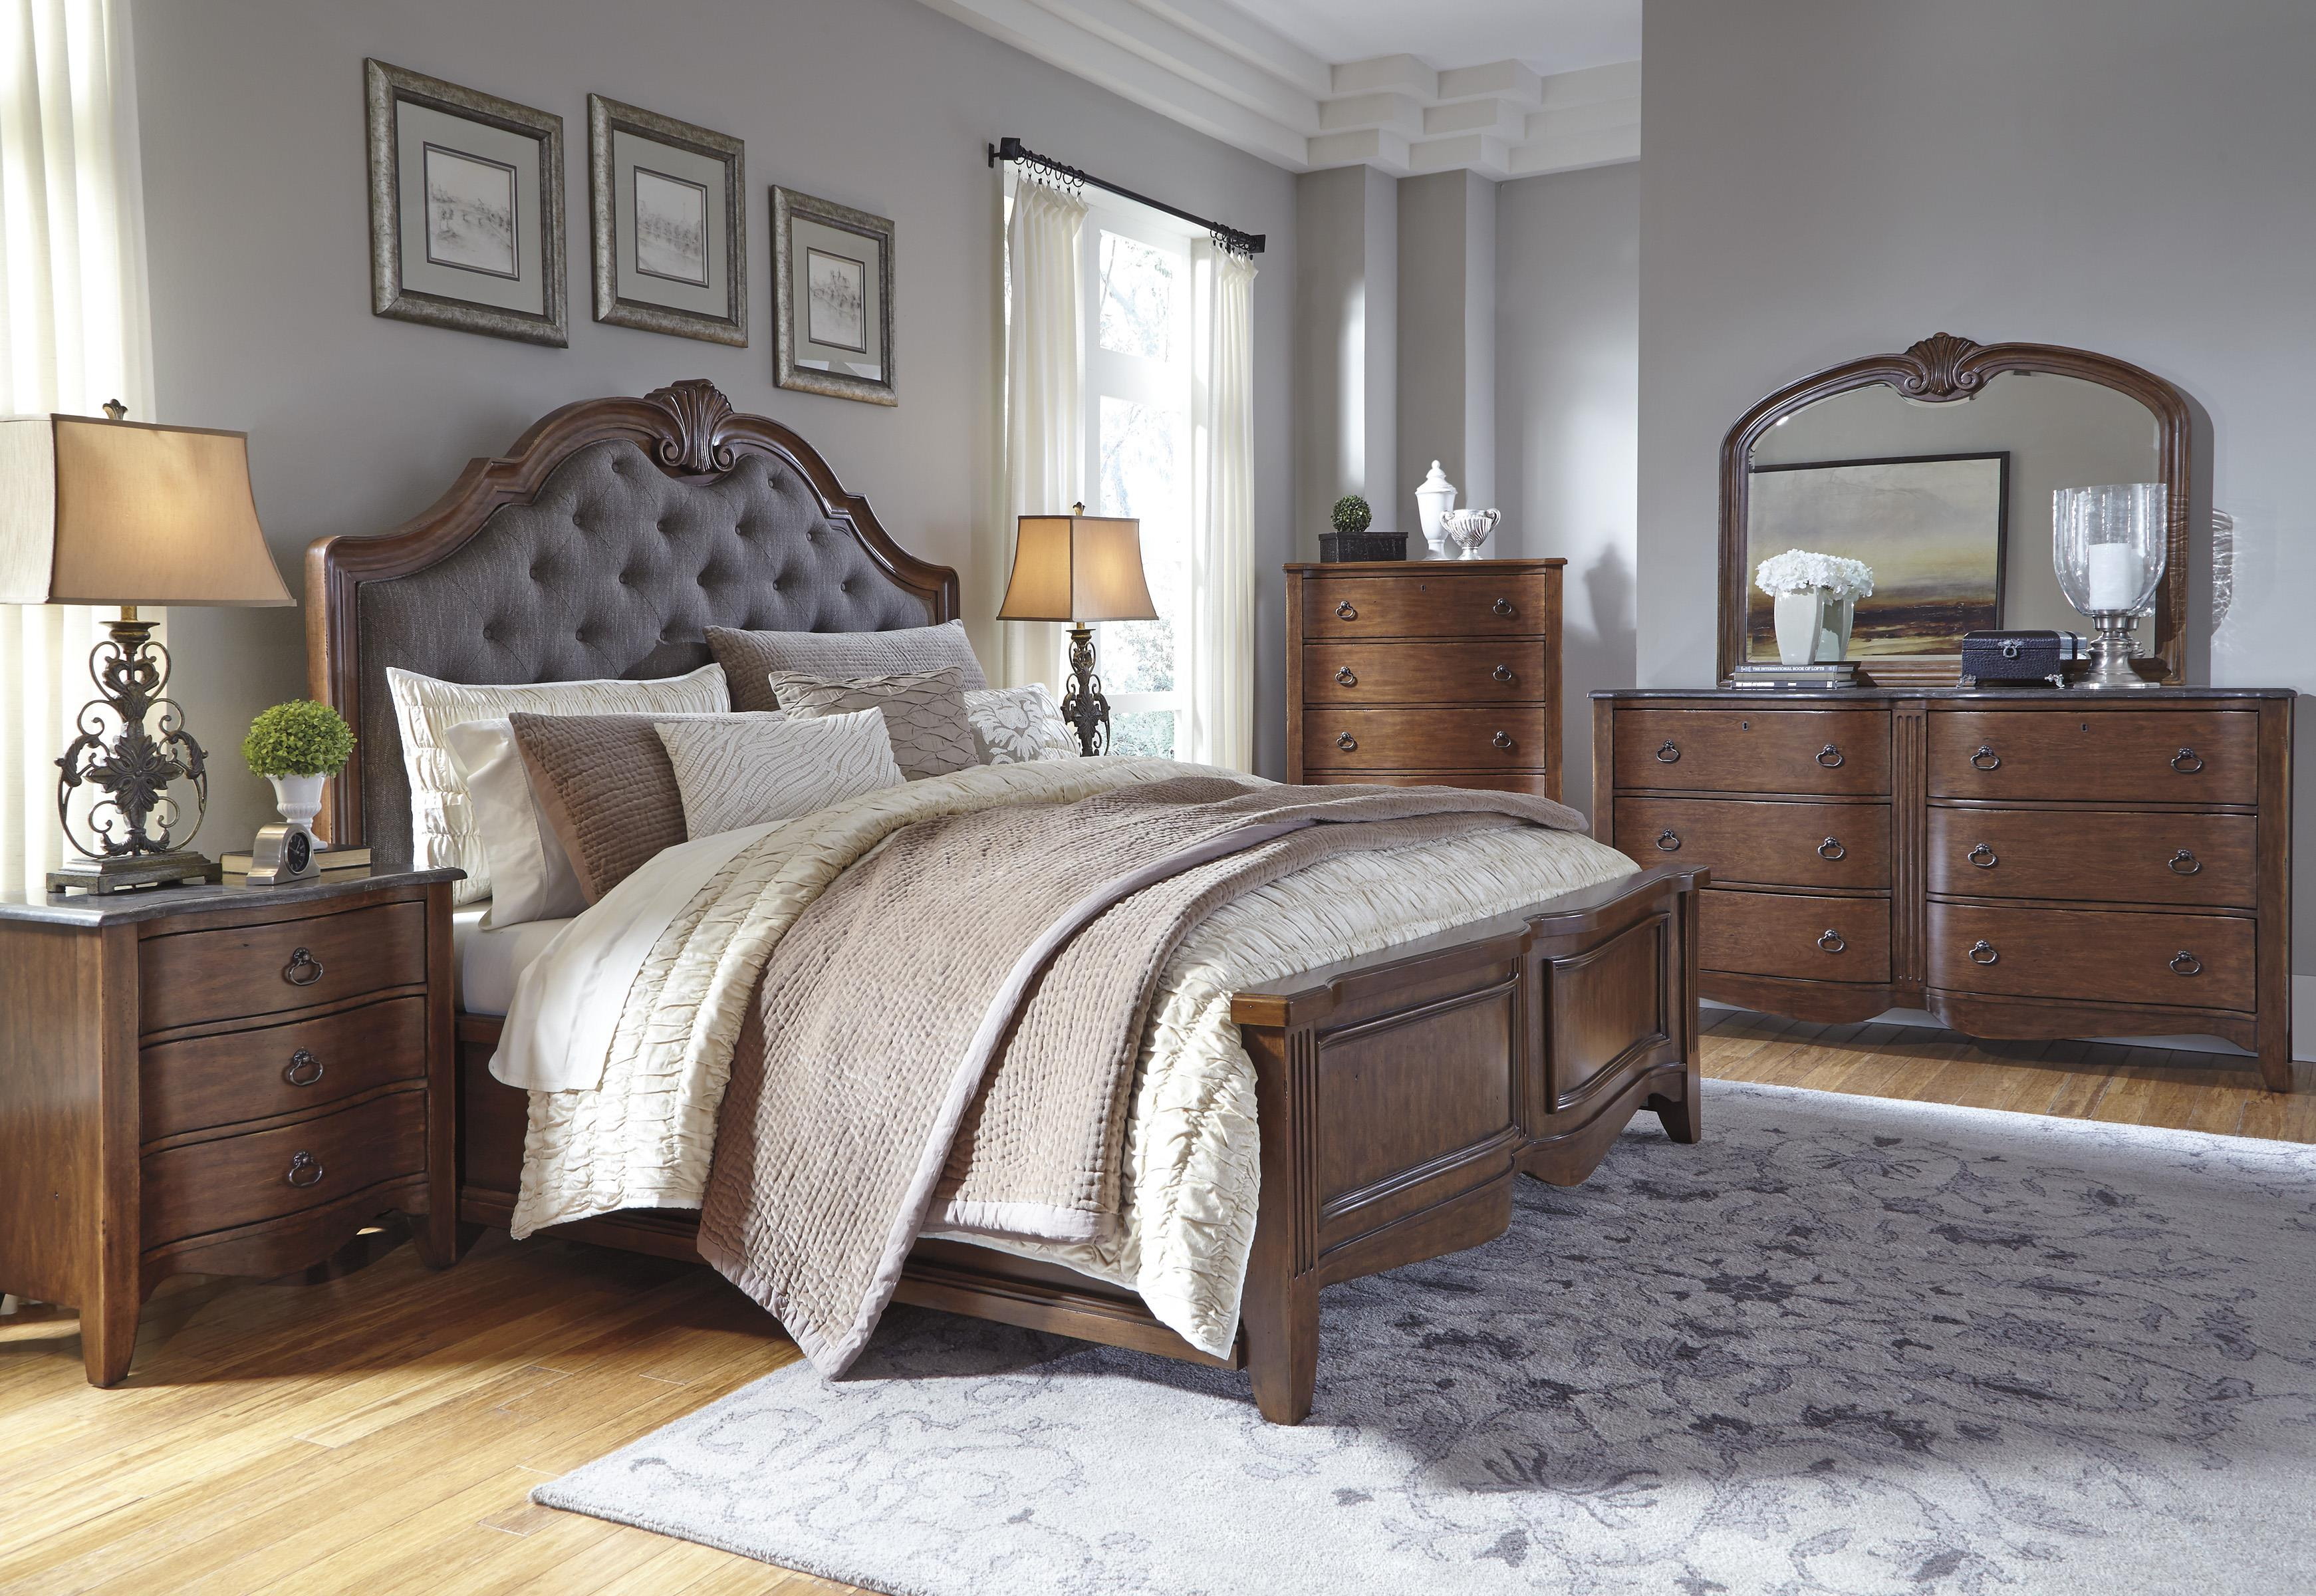 Signature Design by Ashley Balinder King Bedroom Group - Item Number: B708 K Bedroom Group 1